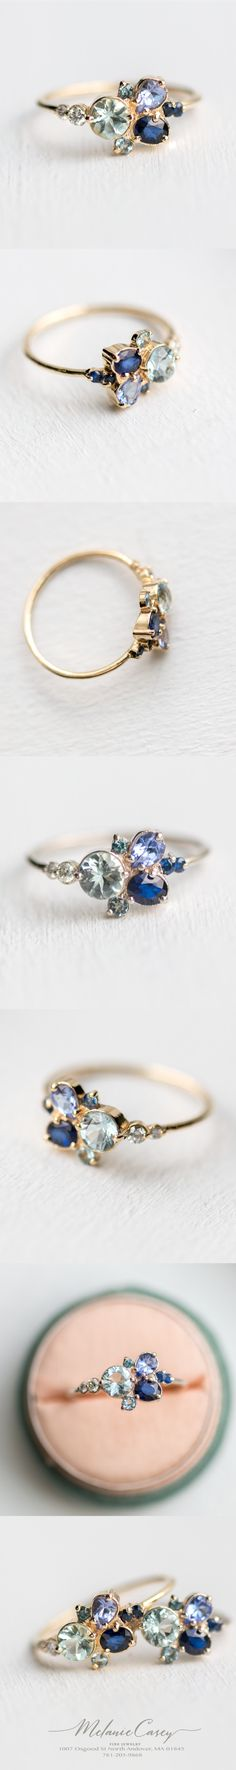 Cool-hued cluster ring